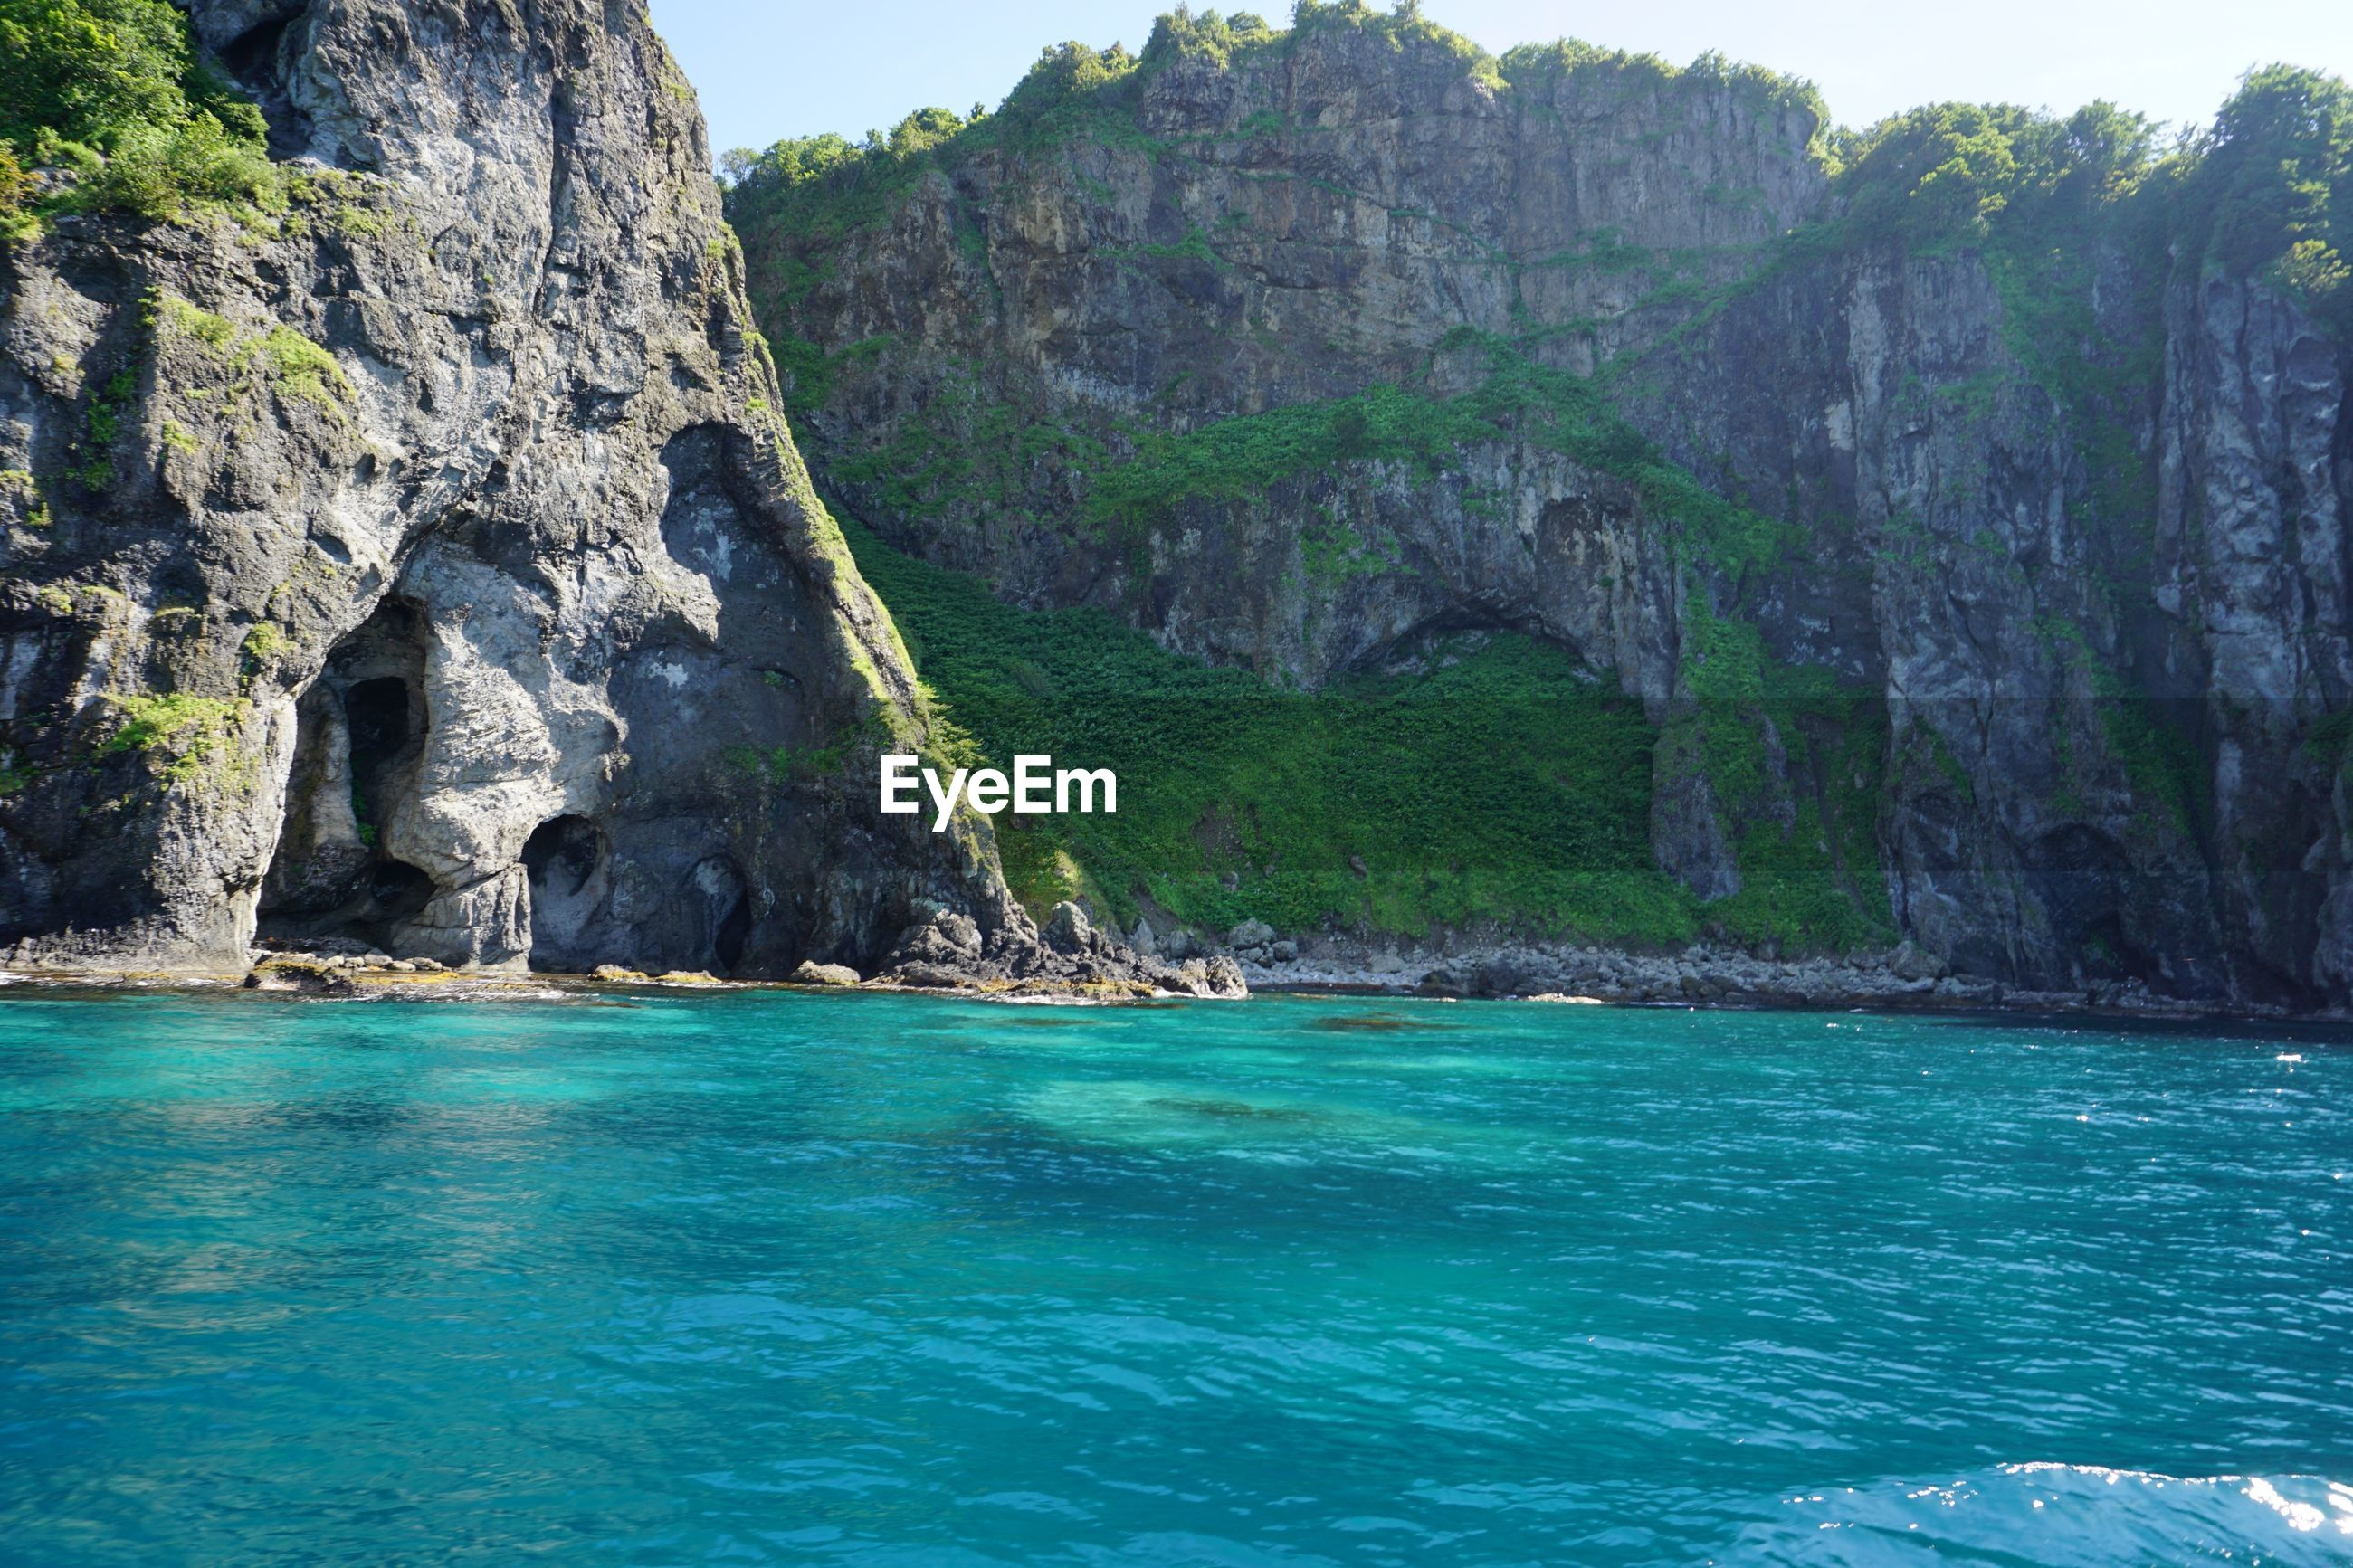 water, rock, solid, sea, nature, rock - object, waterfront, beauty in nature, rock formation, day, scenics - nature, tranquility, cliff, land, tranquil scene, mountain, outdoors, no people, formation, turquoise colored, eroded